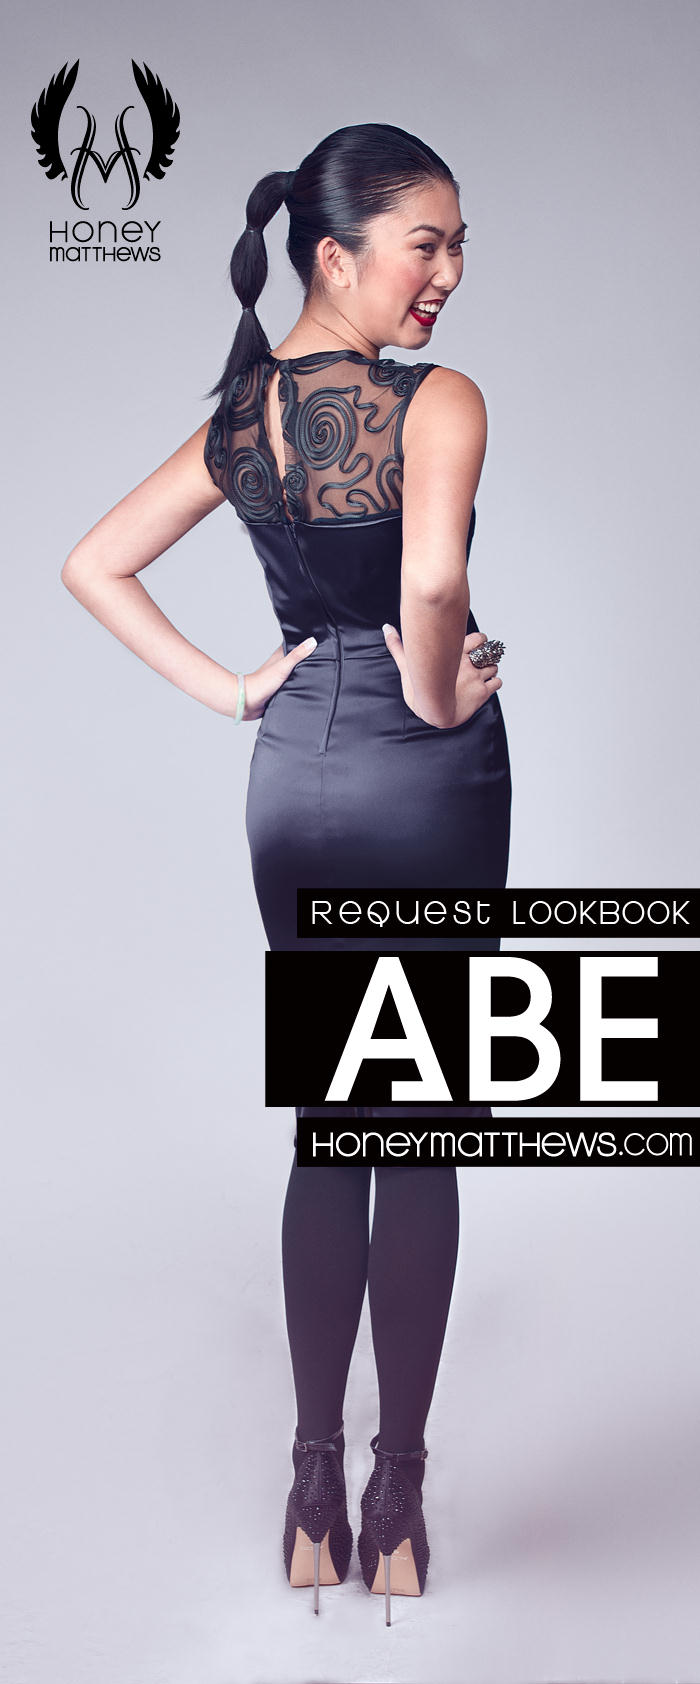 ABE-Honey-Matthews-dress.jpg